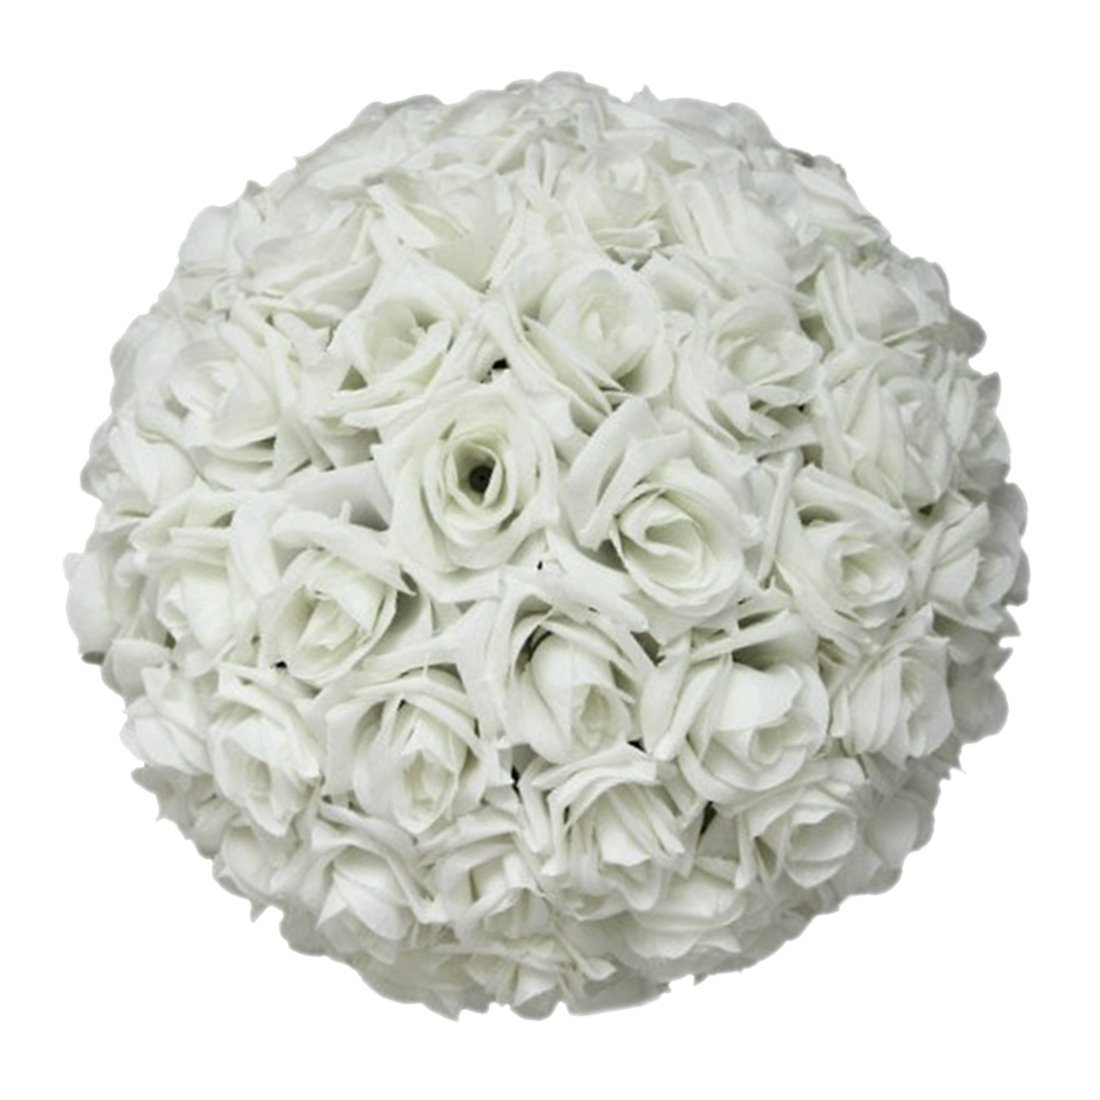 Cheap Rose Ball Candle White Find Rose Ball Candle White Deals On